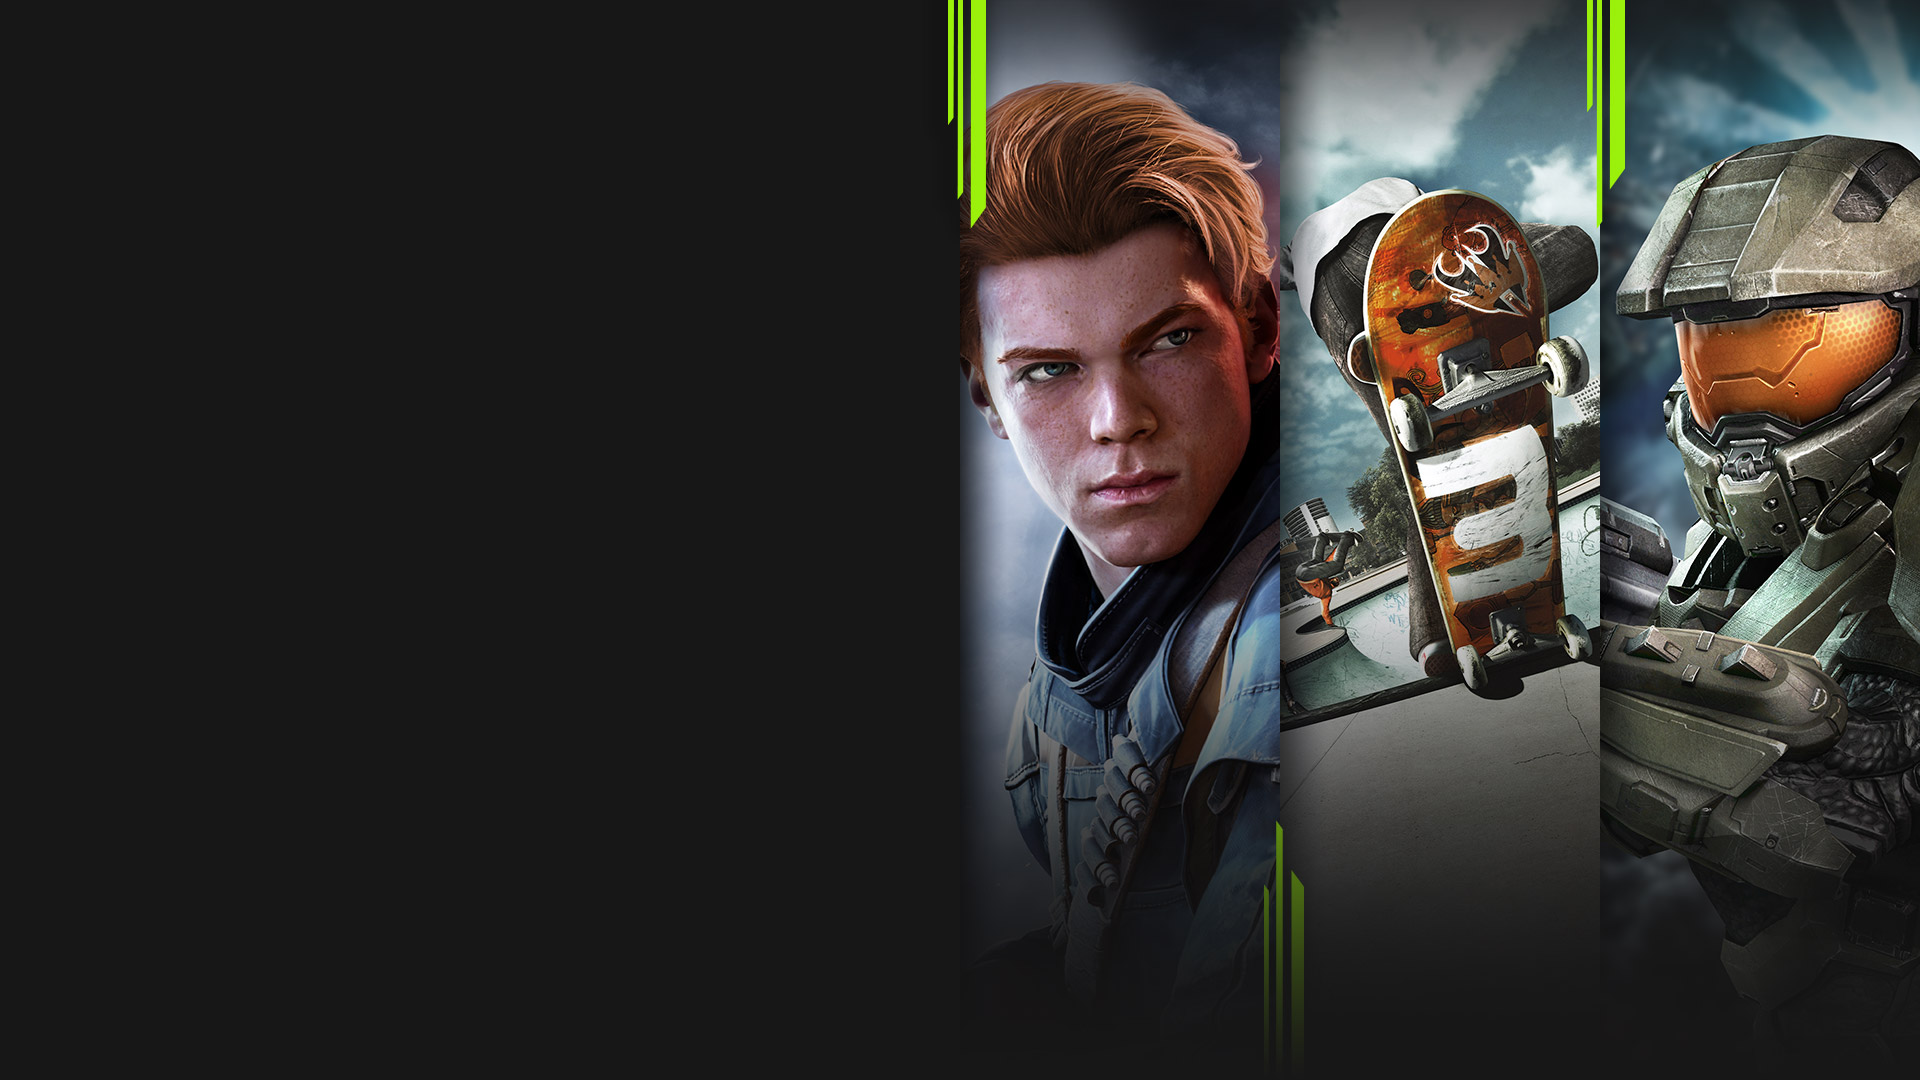 Game art from multiple games available with Xbox Game Pass including Star Wars Jedi: Fallen Order, Skate 3, and Halo 4.